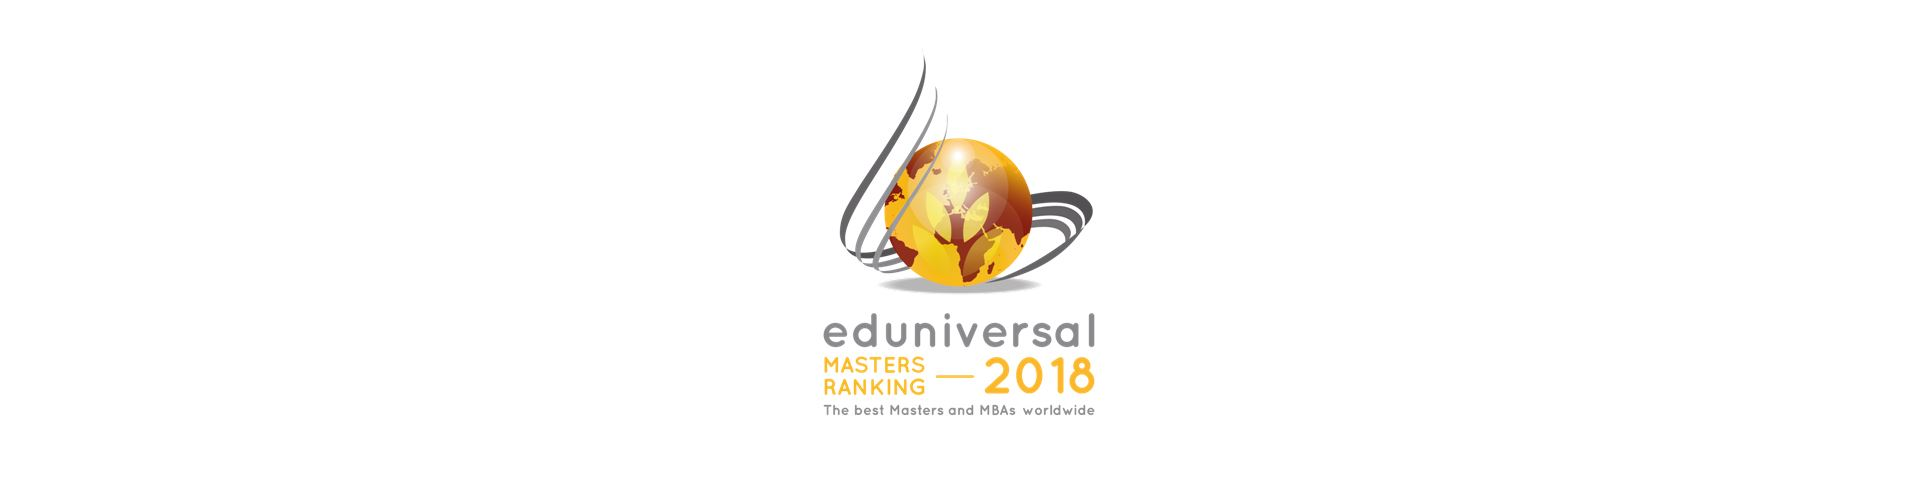 Nova SBE in Eduniversal's Best Master's Rankings Worldwide and in Europe. Nova SBE's Master's in Economics in the European TOP 3 ranking